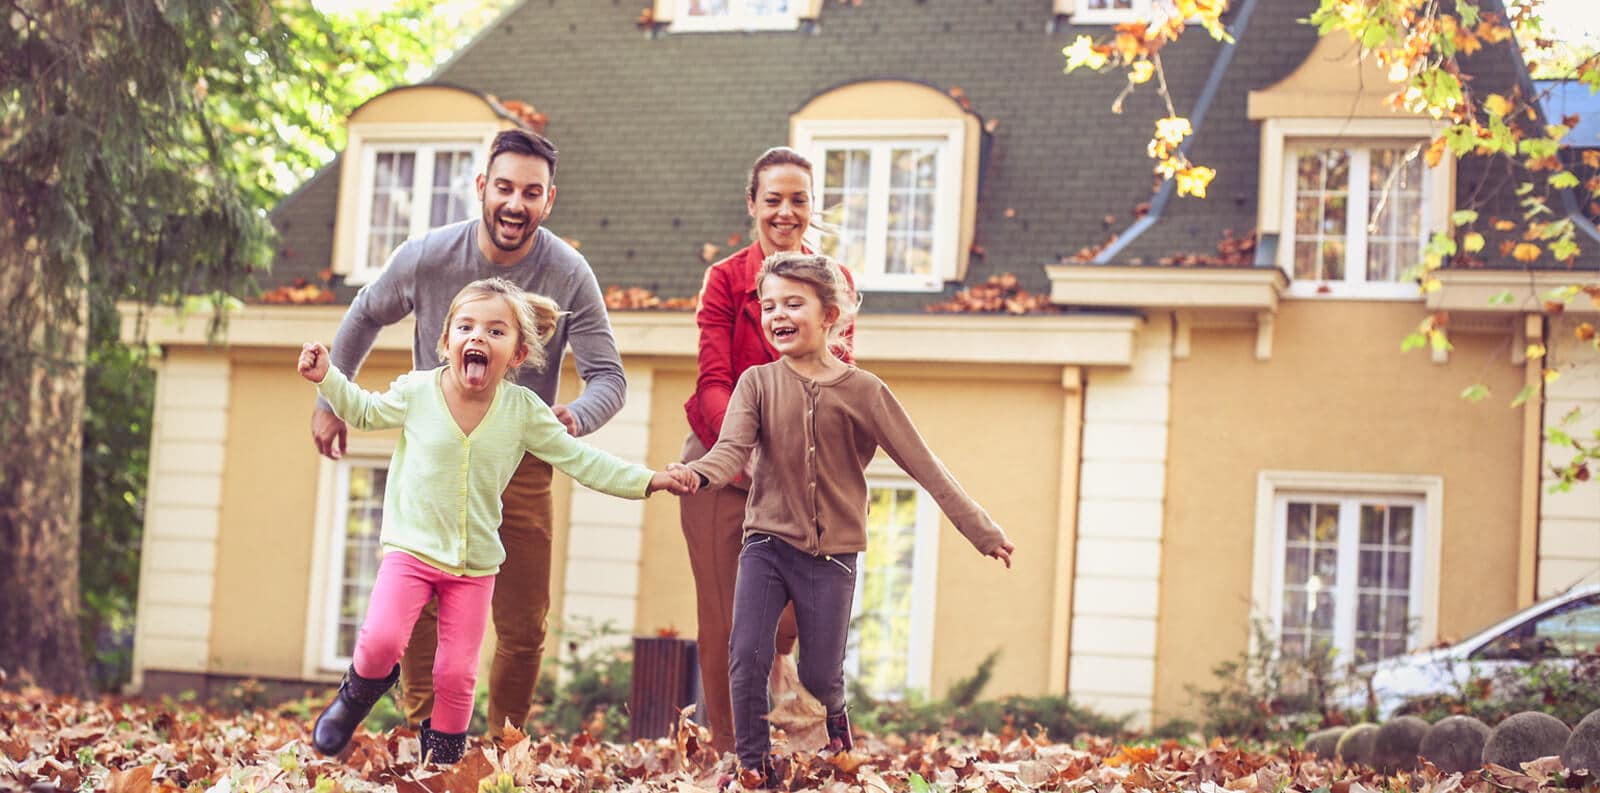 family enjoys a fall day outside their home